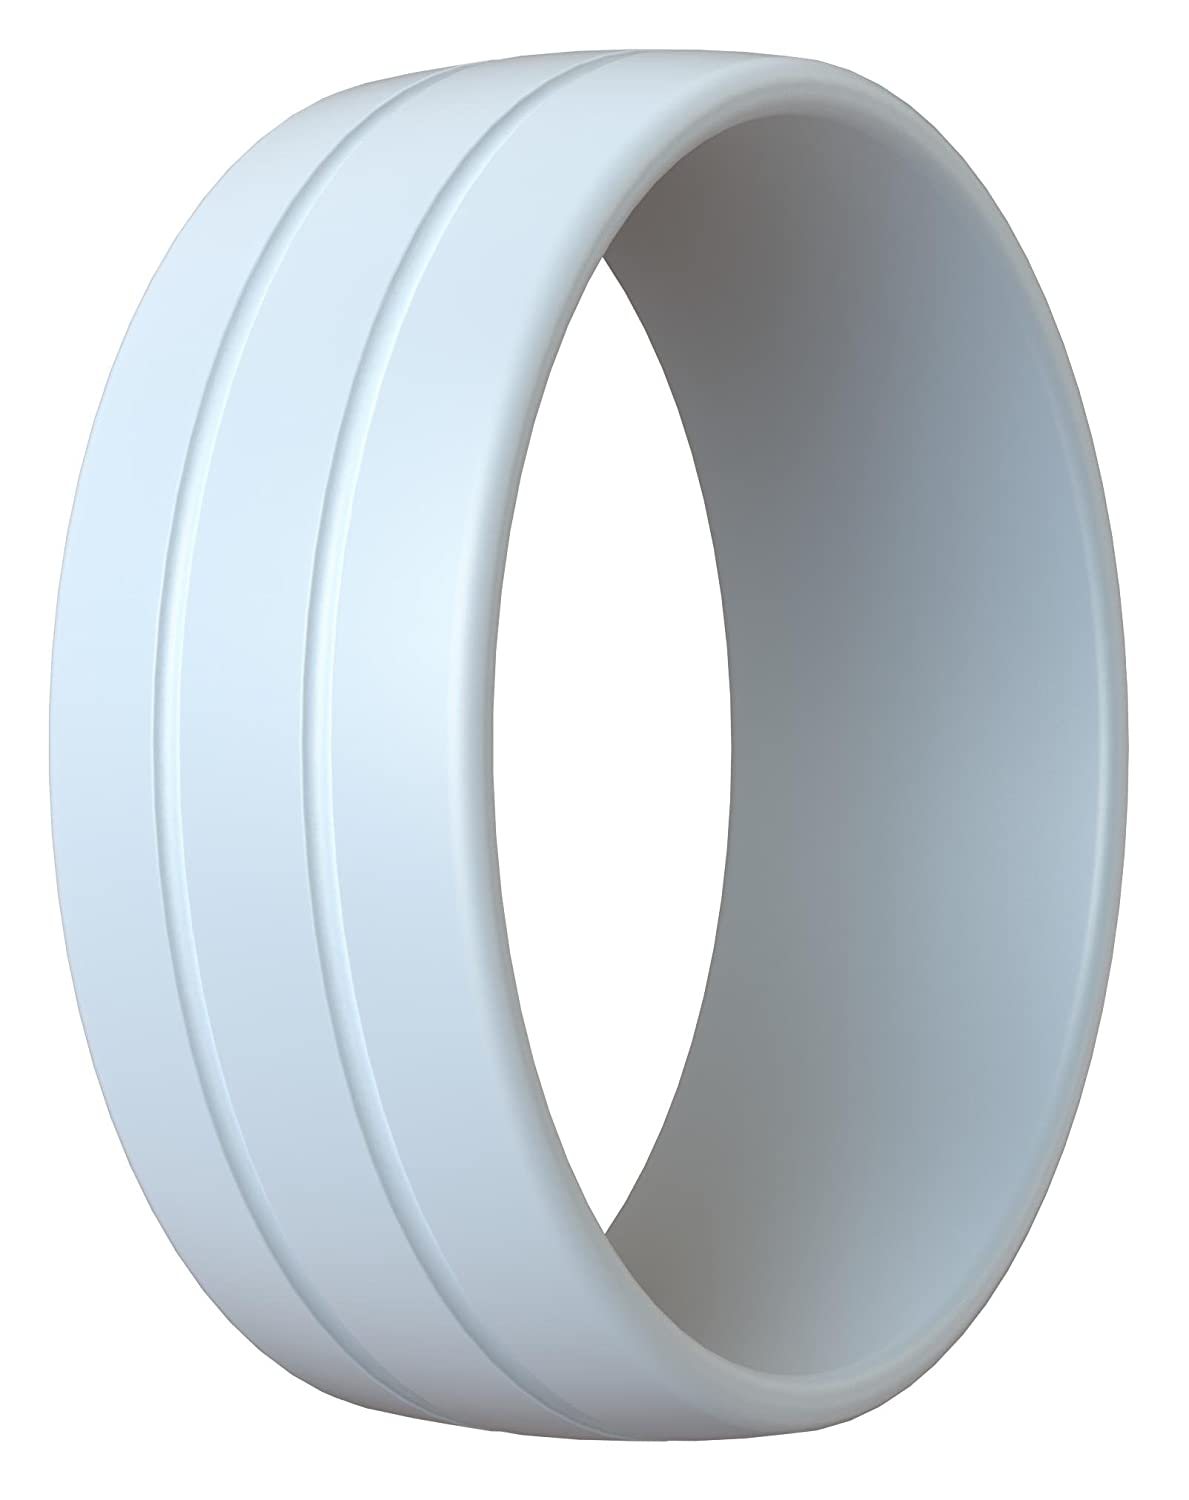 Slimfit Silicone Wedding Band Silicone Rings for Men